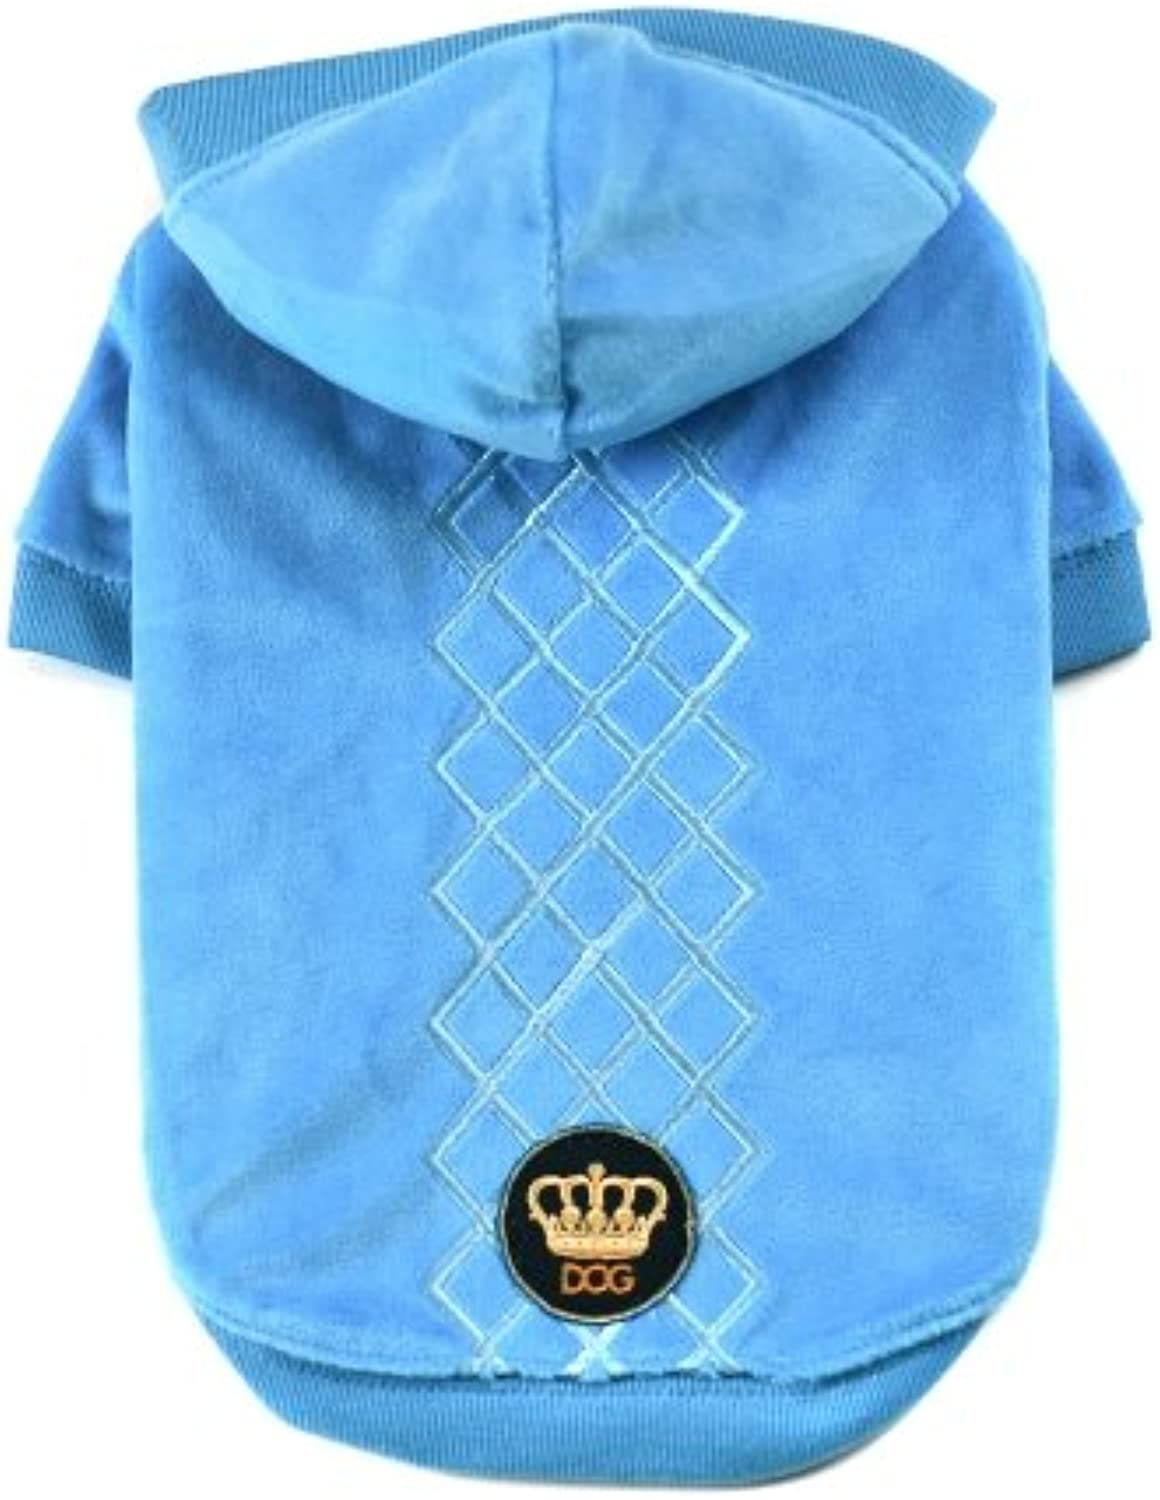 Dogs of Glamour Argyle Hoodie, Large, Peacock